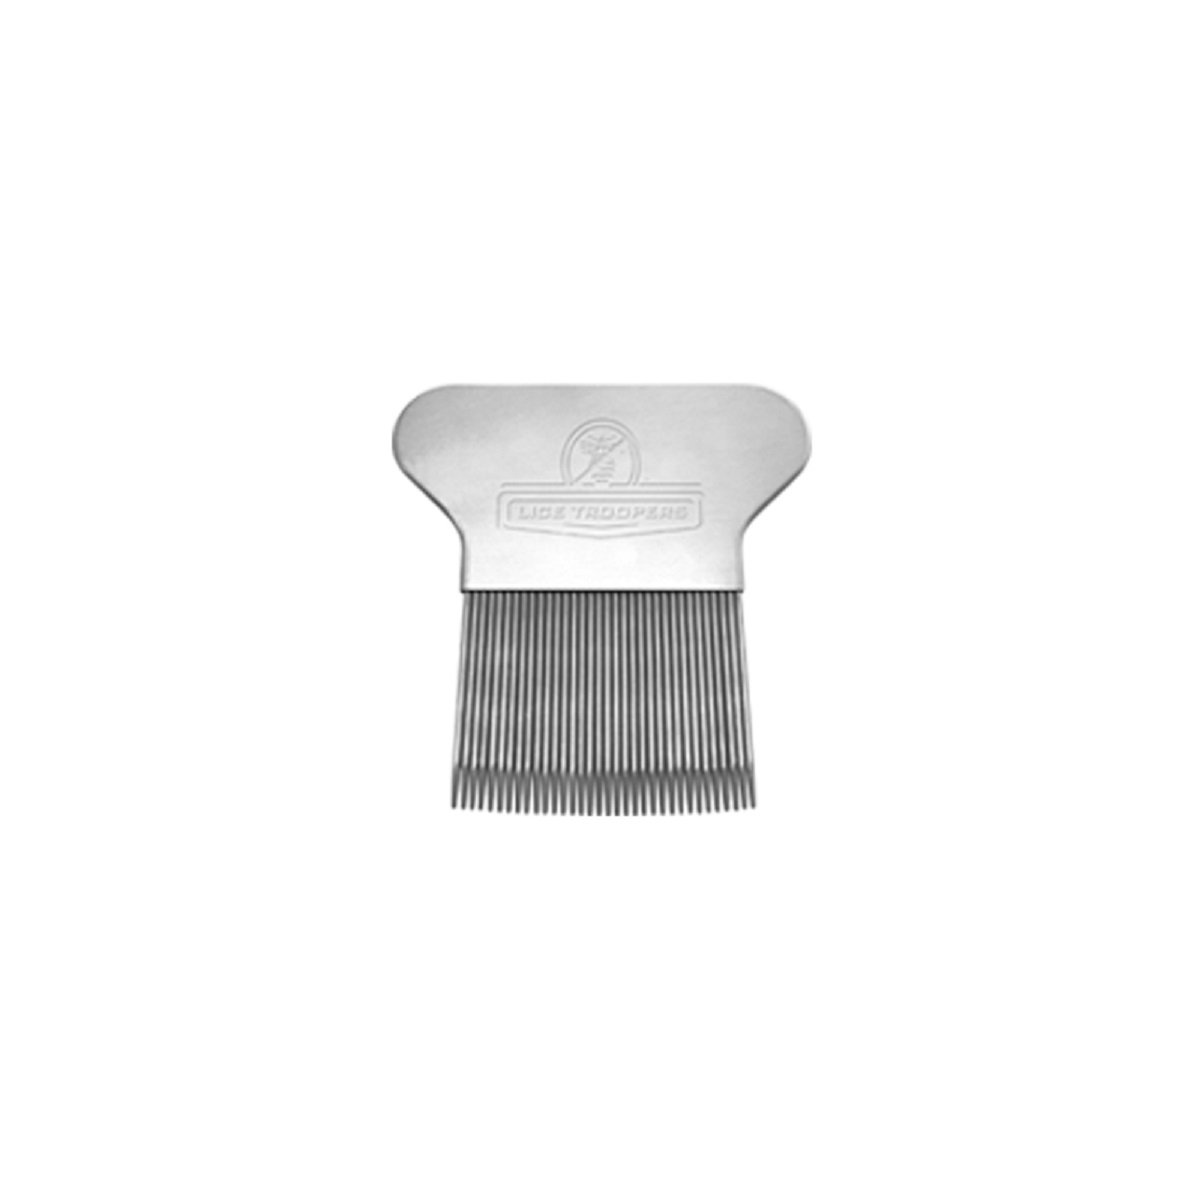 Lice Troopers Strong and Durable Lice Extraction Comb - Made of Stainless Steel, Hand Fit, Effortless Combing